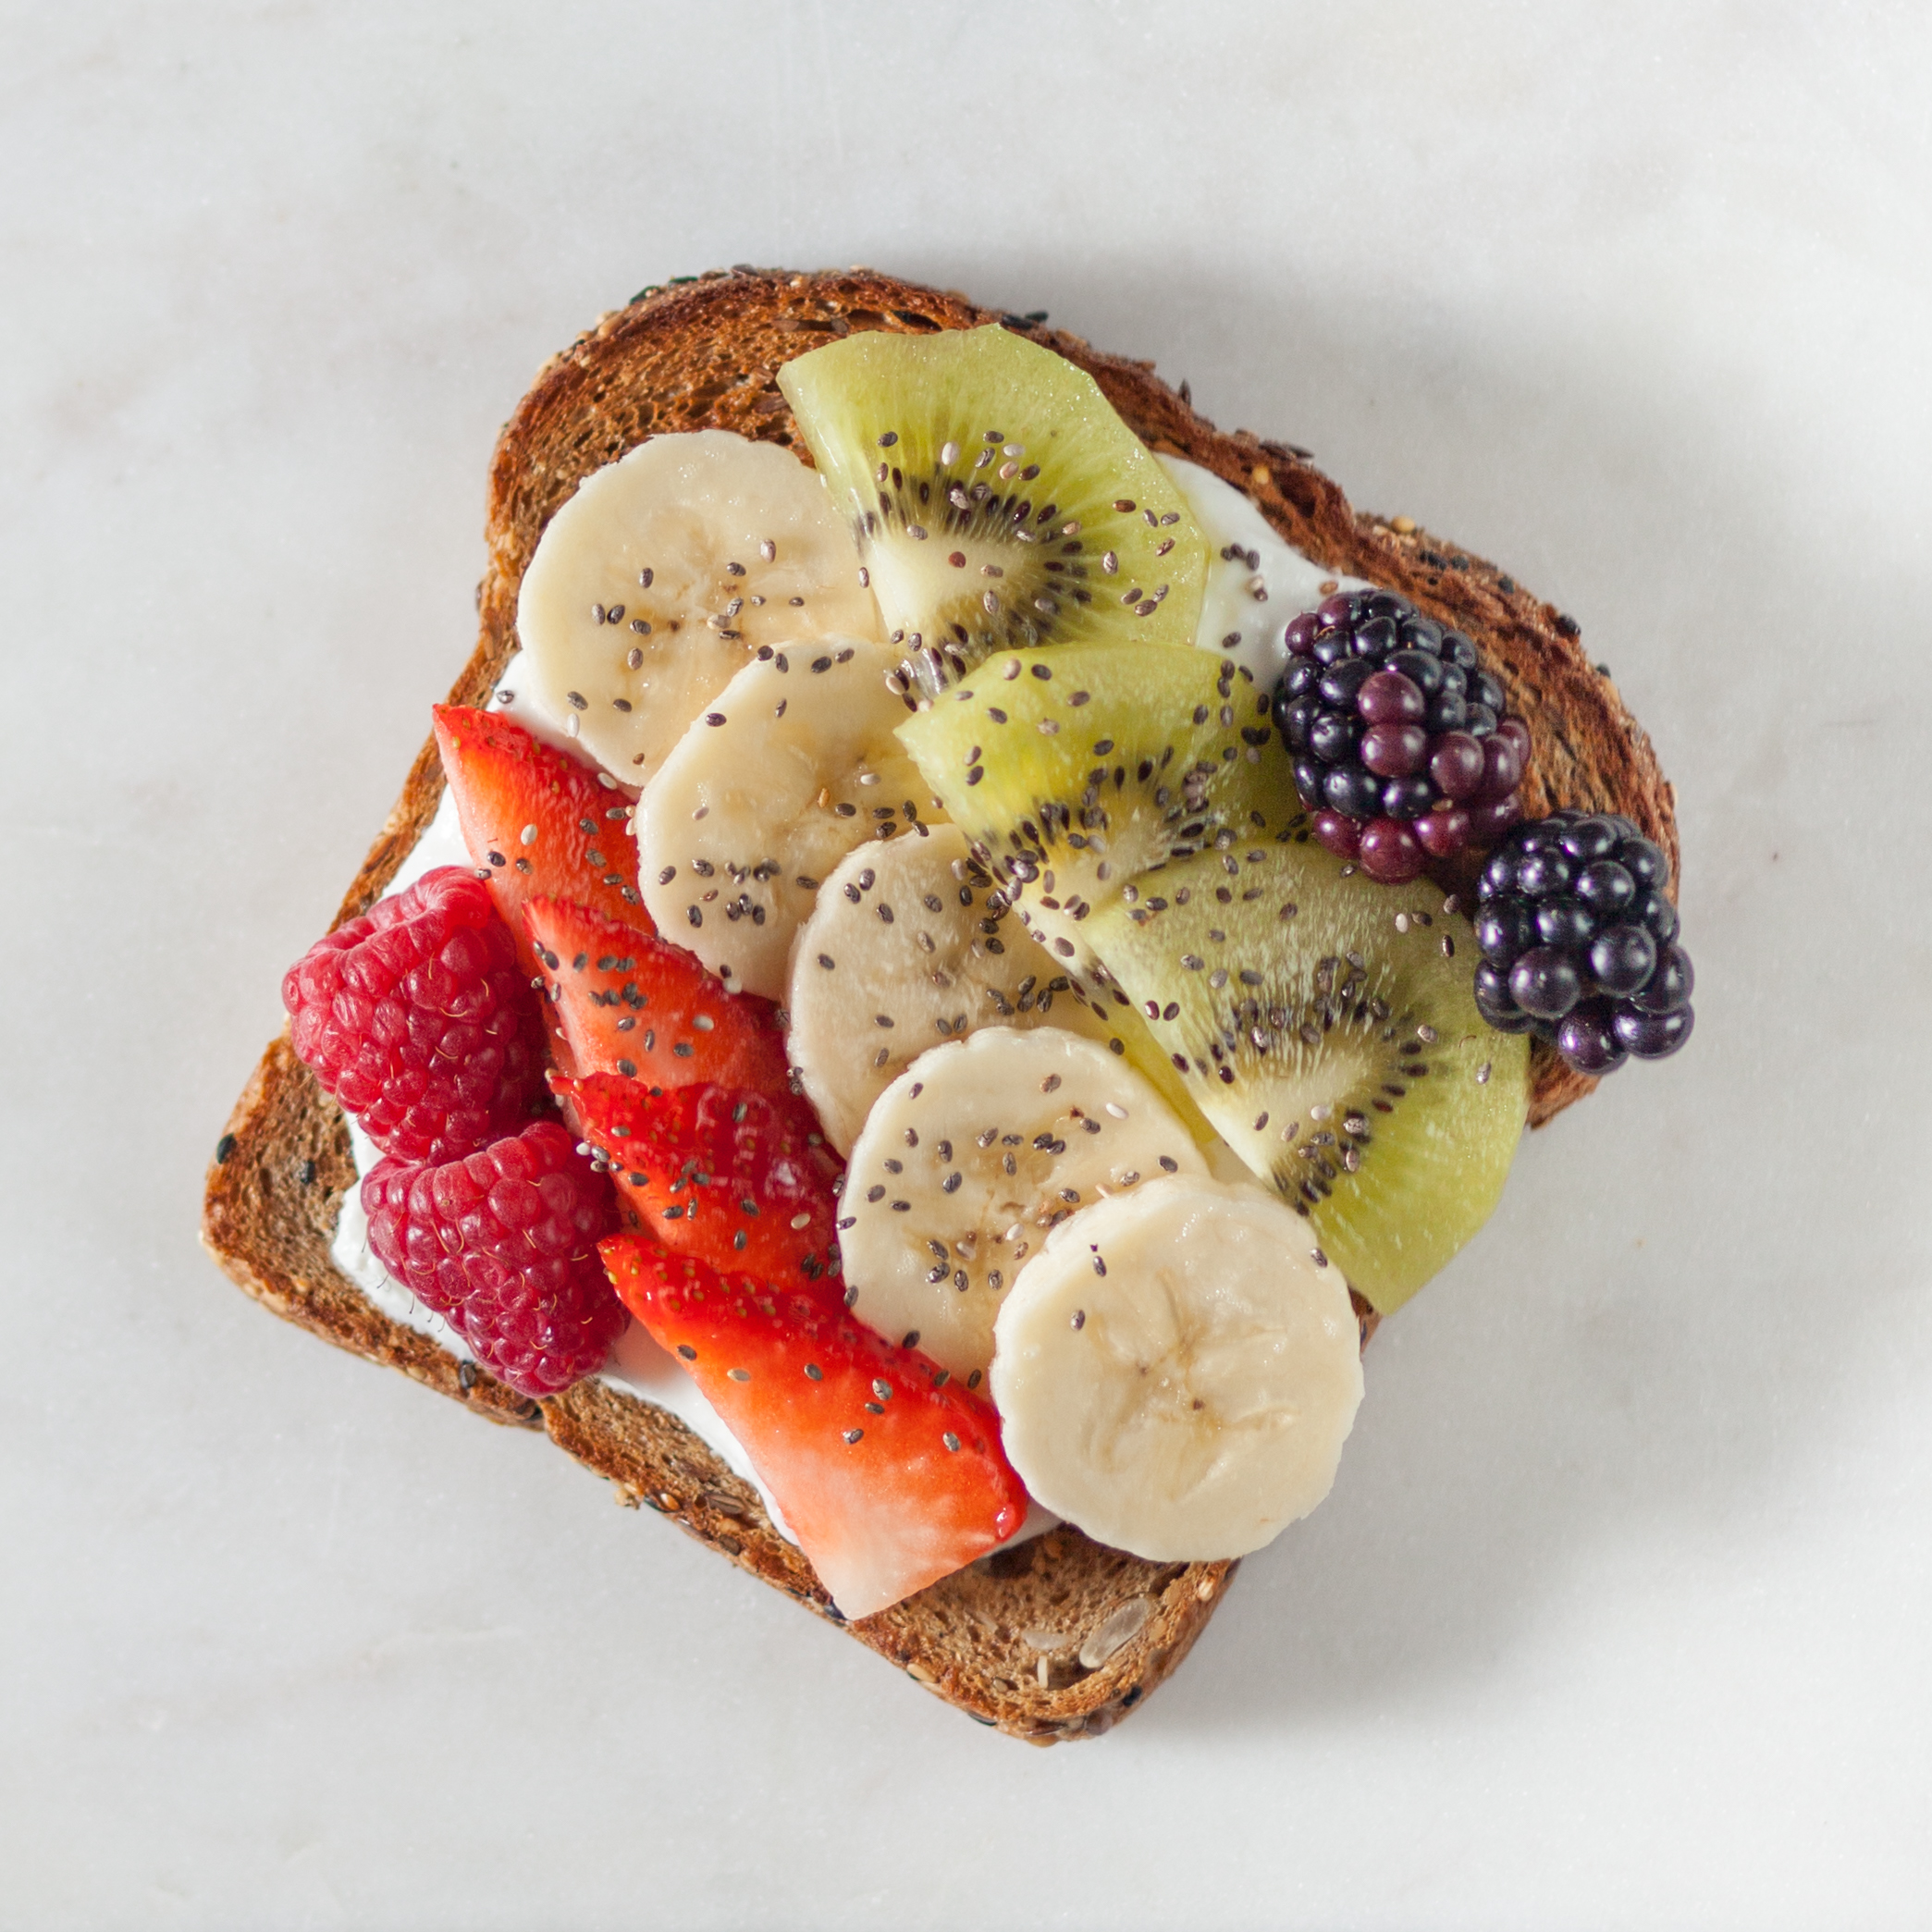 Toast with greek yogurt and miscellaneous fruit